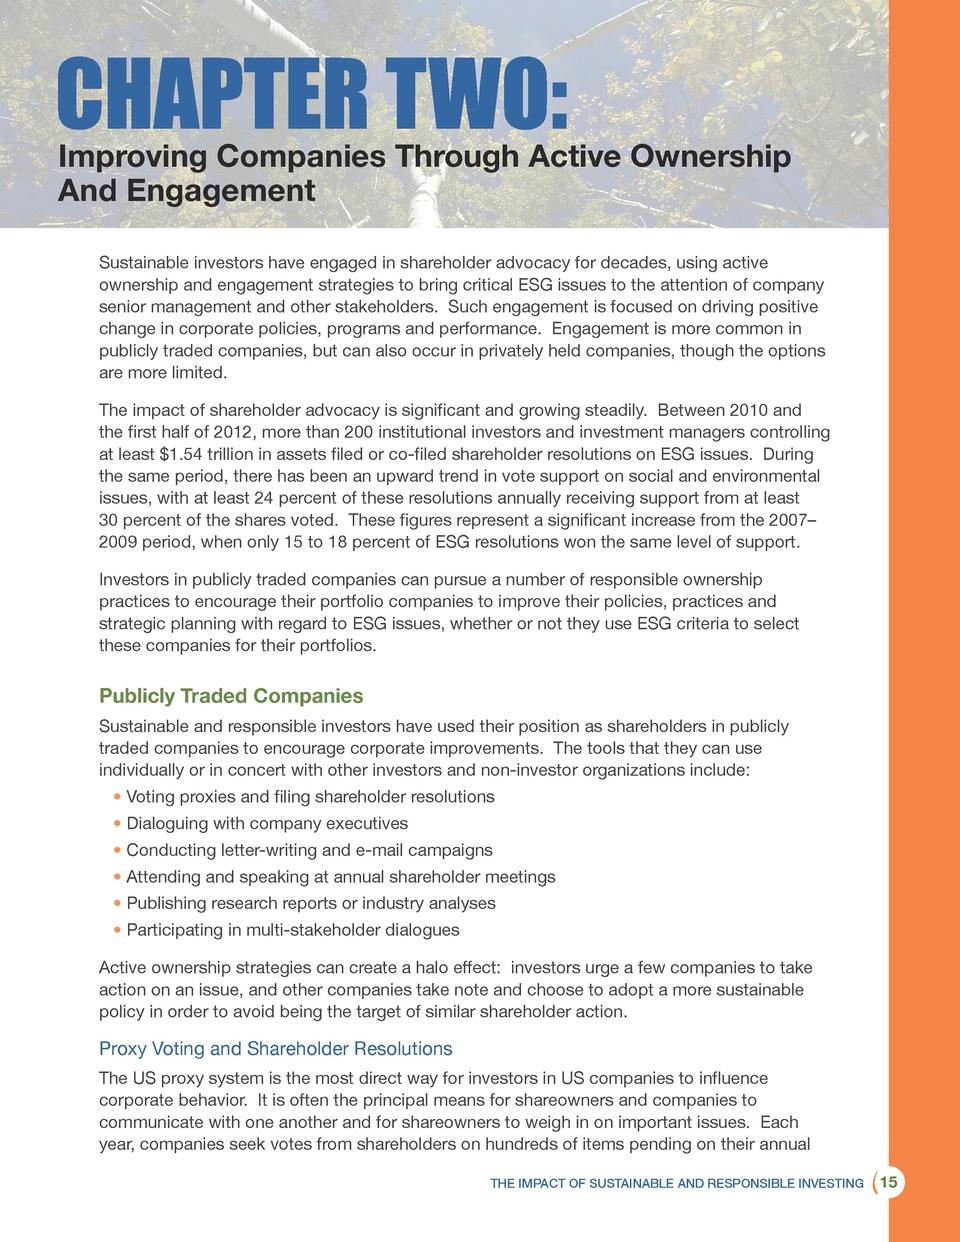 Improving Companies Through Active Ownership And Engagement Sustainable investors have engaged in shareholder advocacy for...